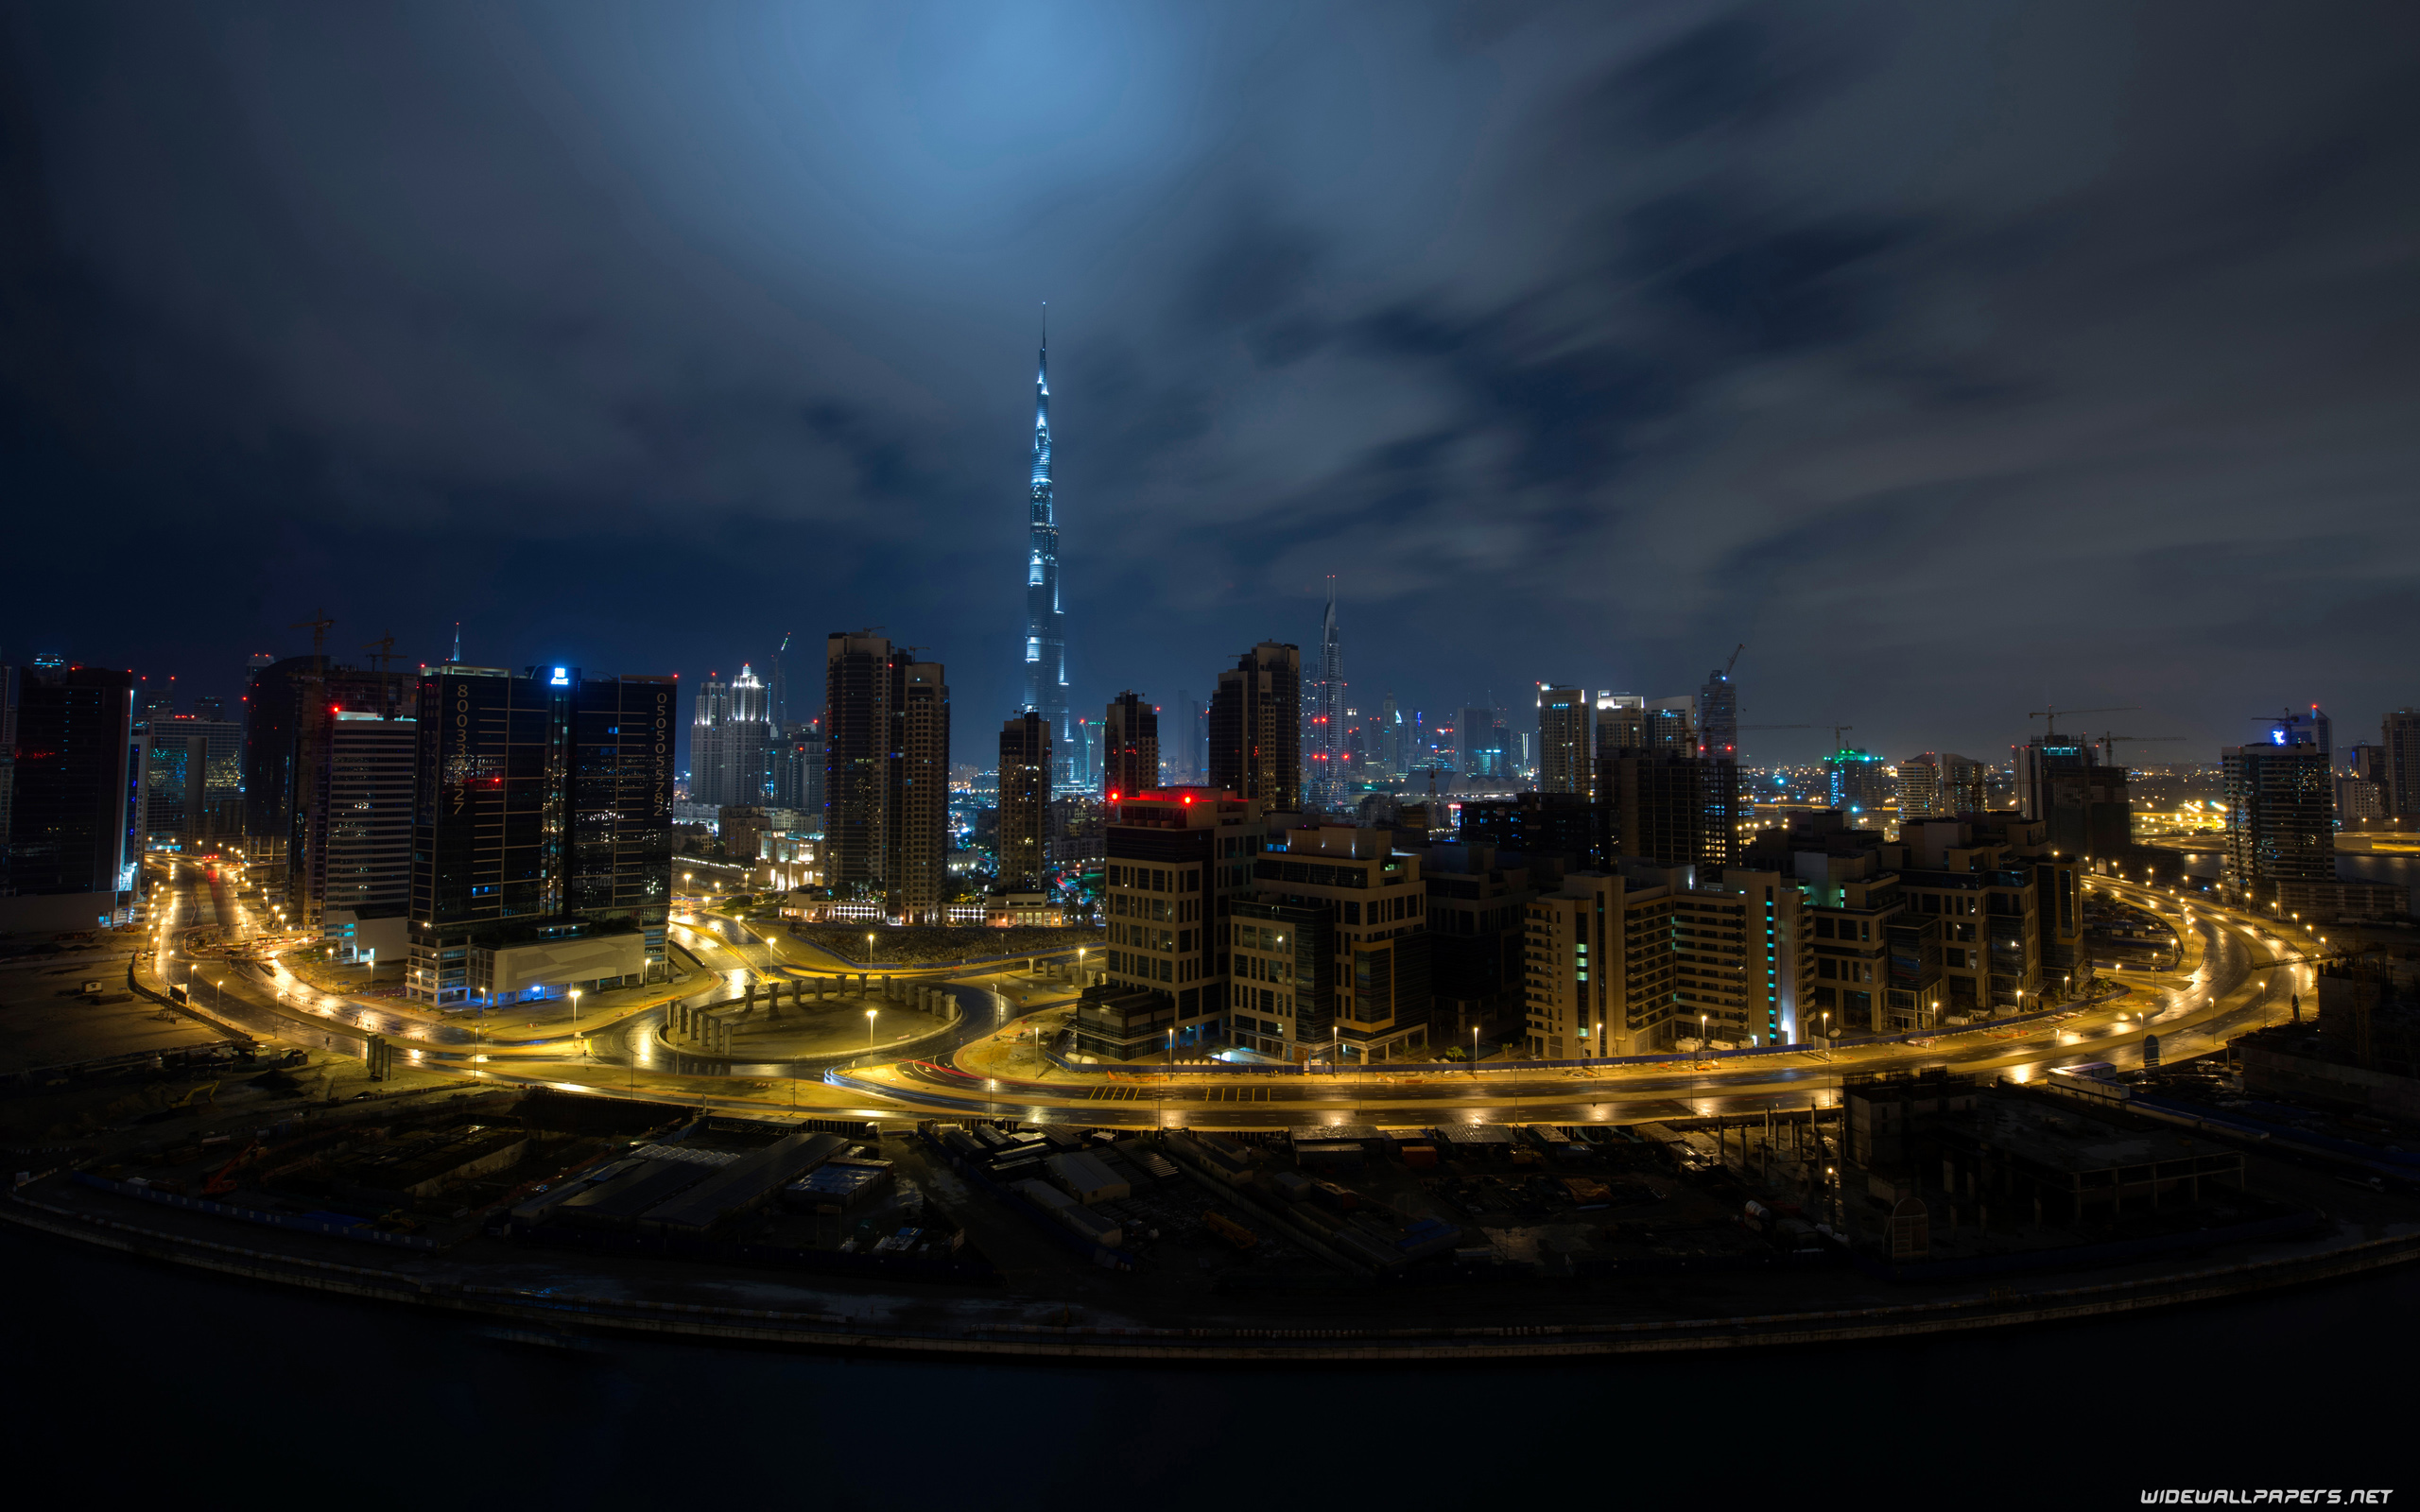 Dubai 4k wallpaper wallpapersafari - Desktop wallpaper 4k ...